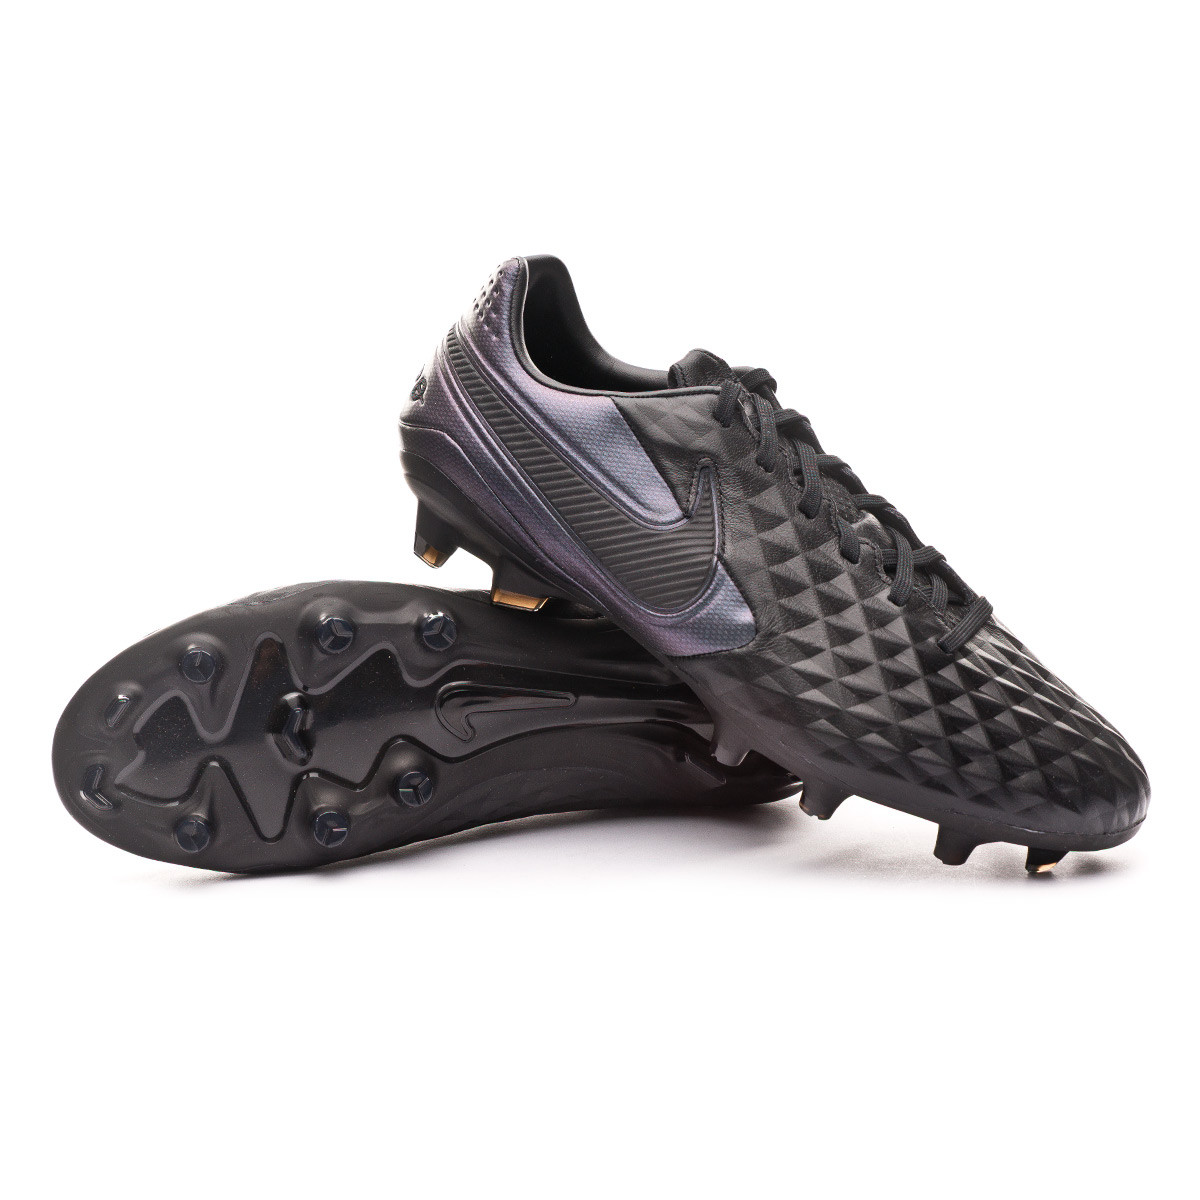 Adidas Tiempo FG Soccer Sports Shoes Outdoor Turf Football Training Boots footba